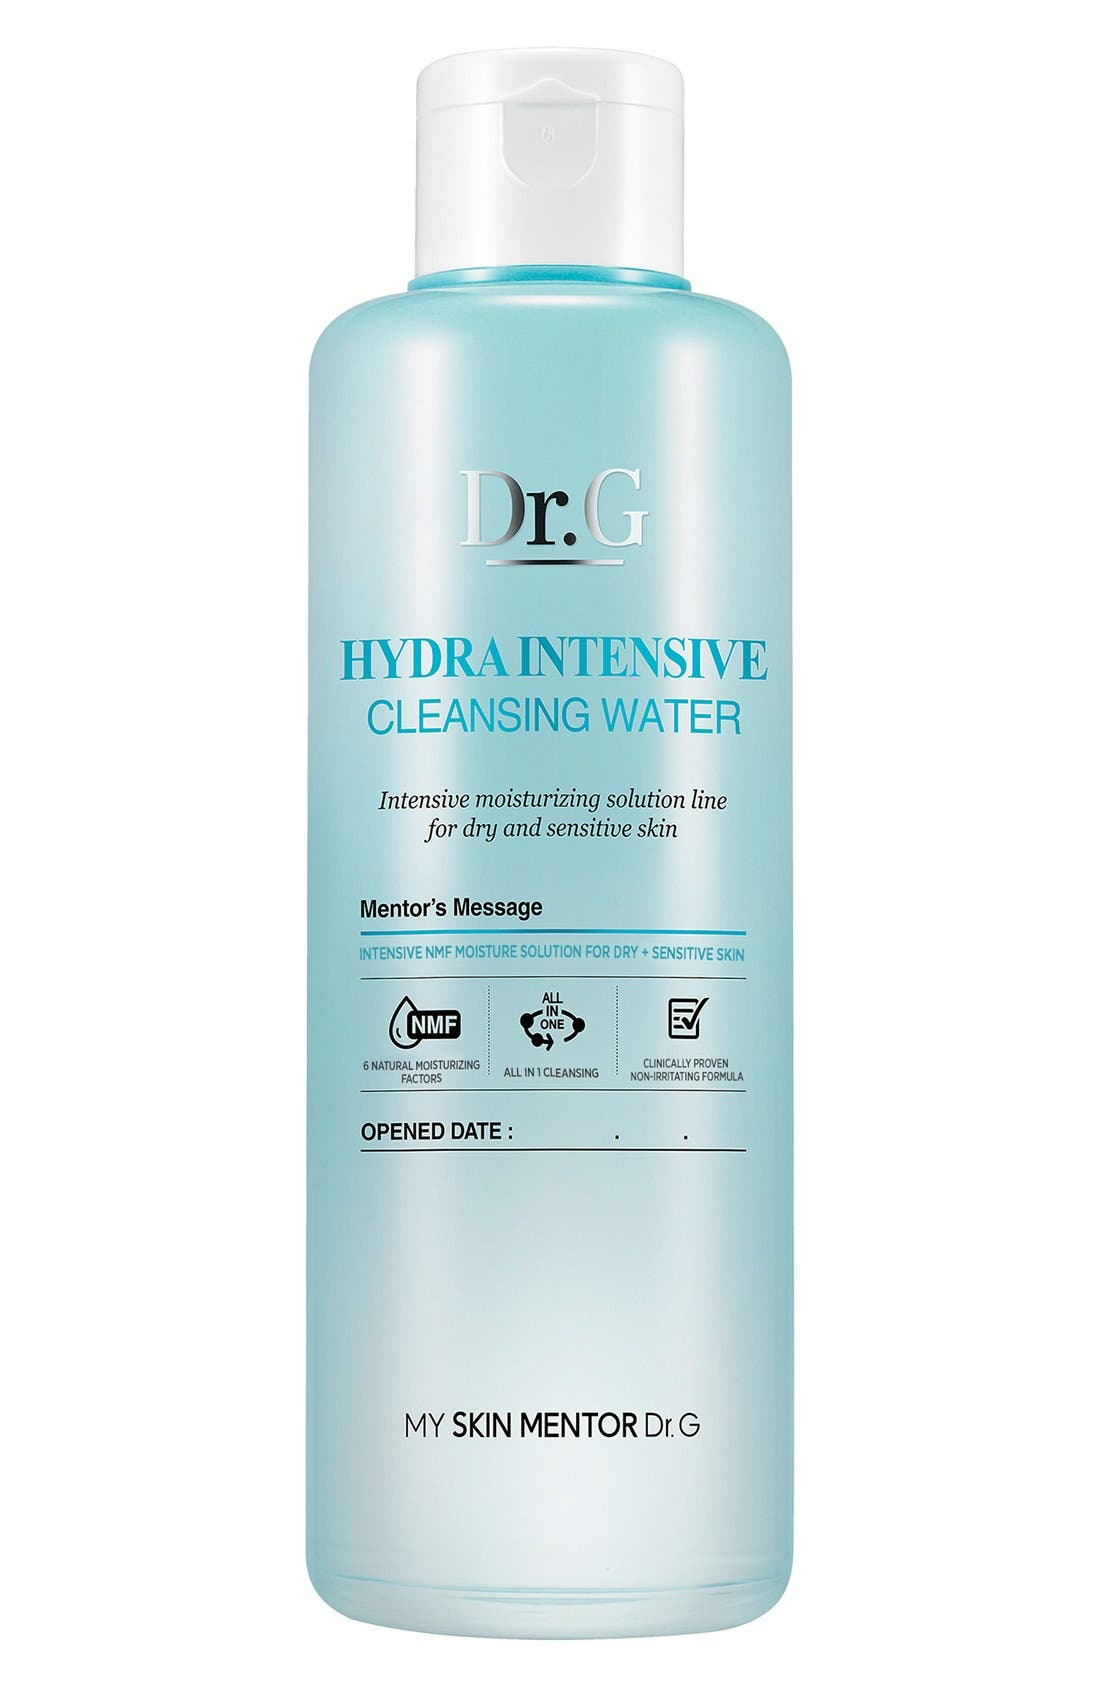 My Skin Mentor Dr. G Beauty Hydra Intensive Cleansing Water